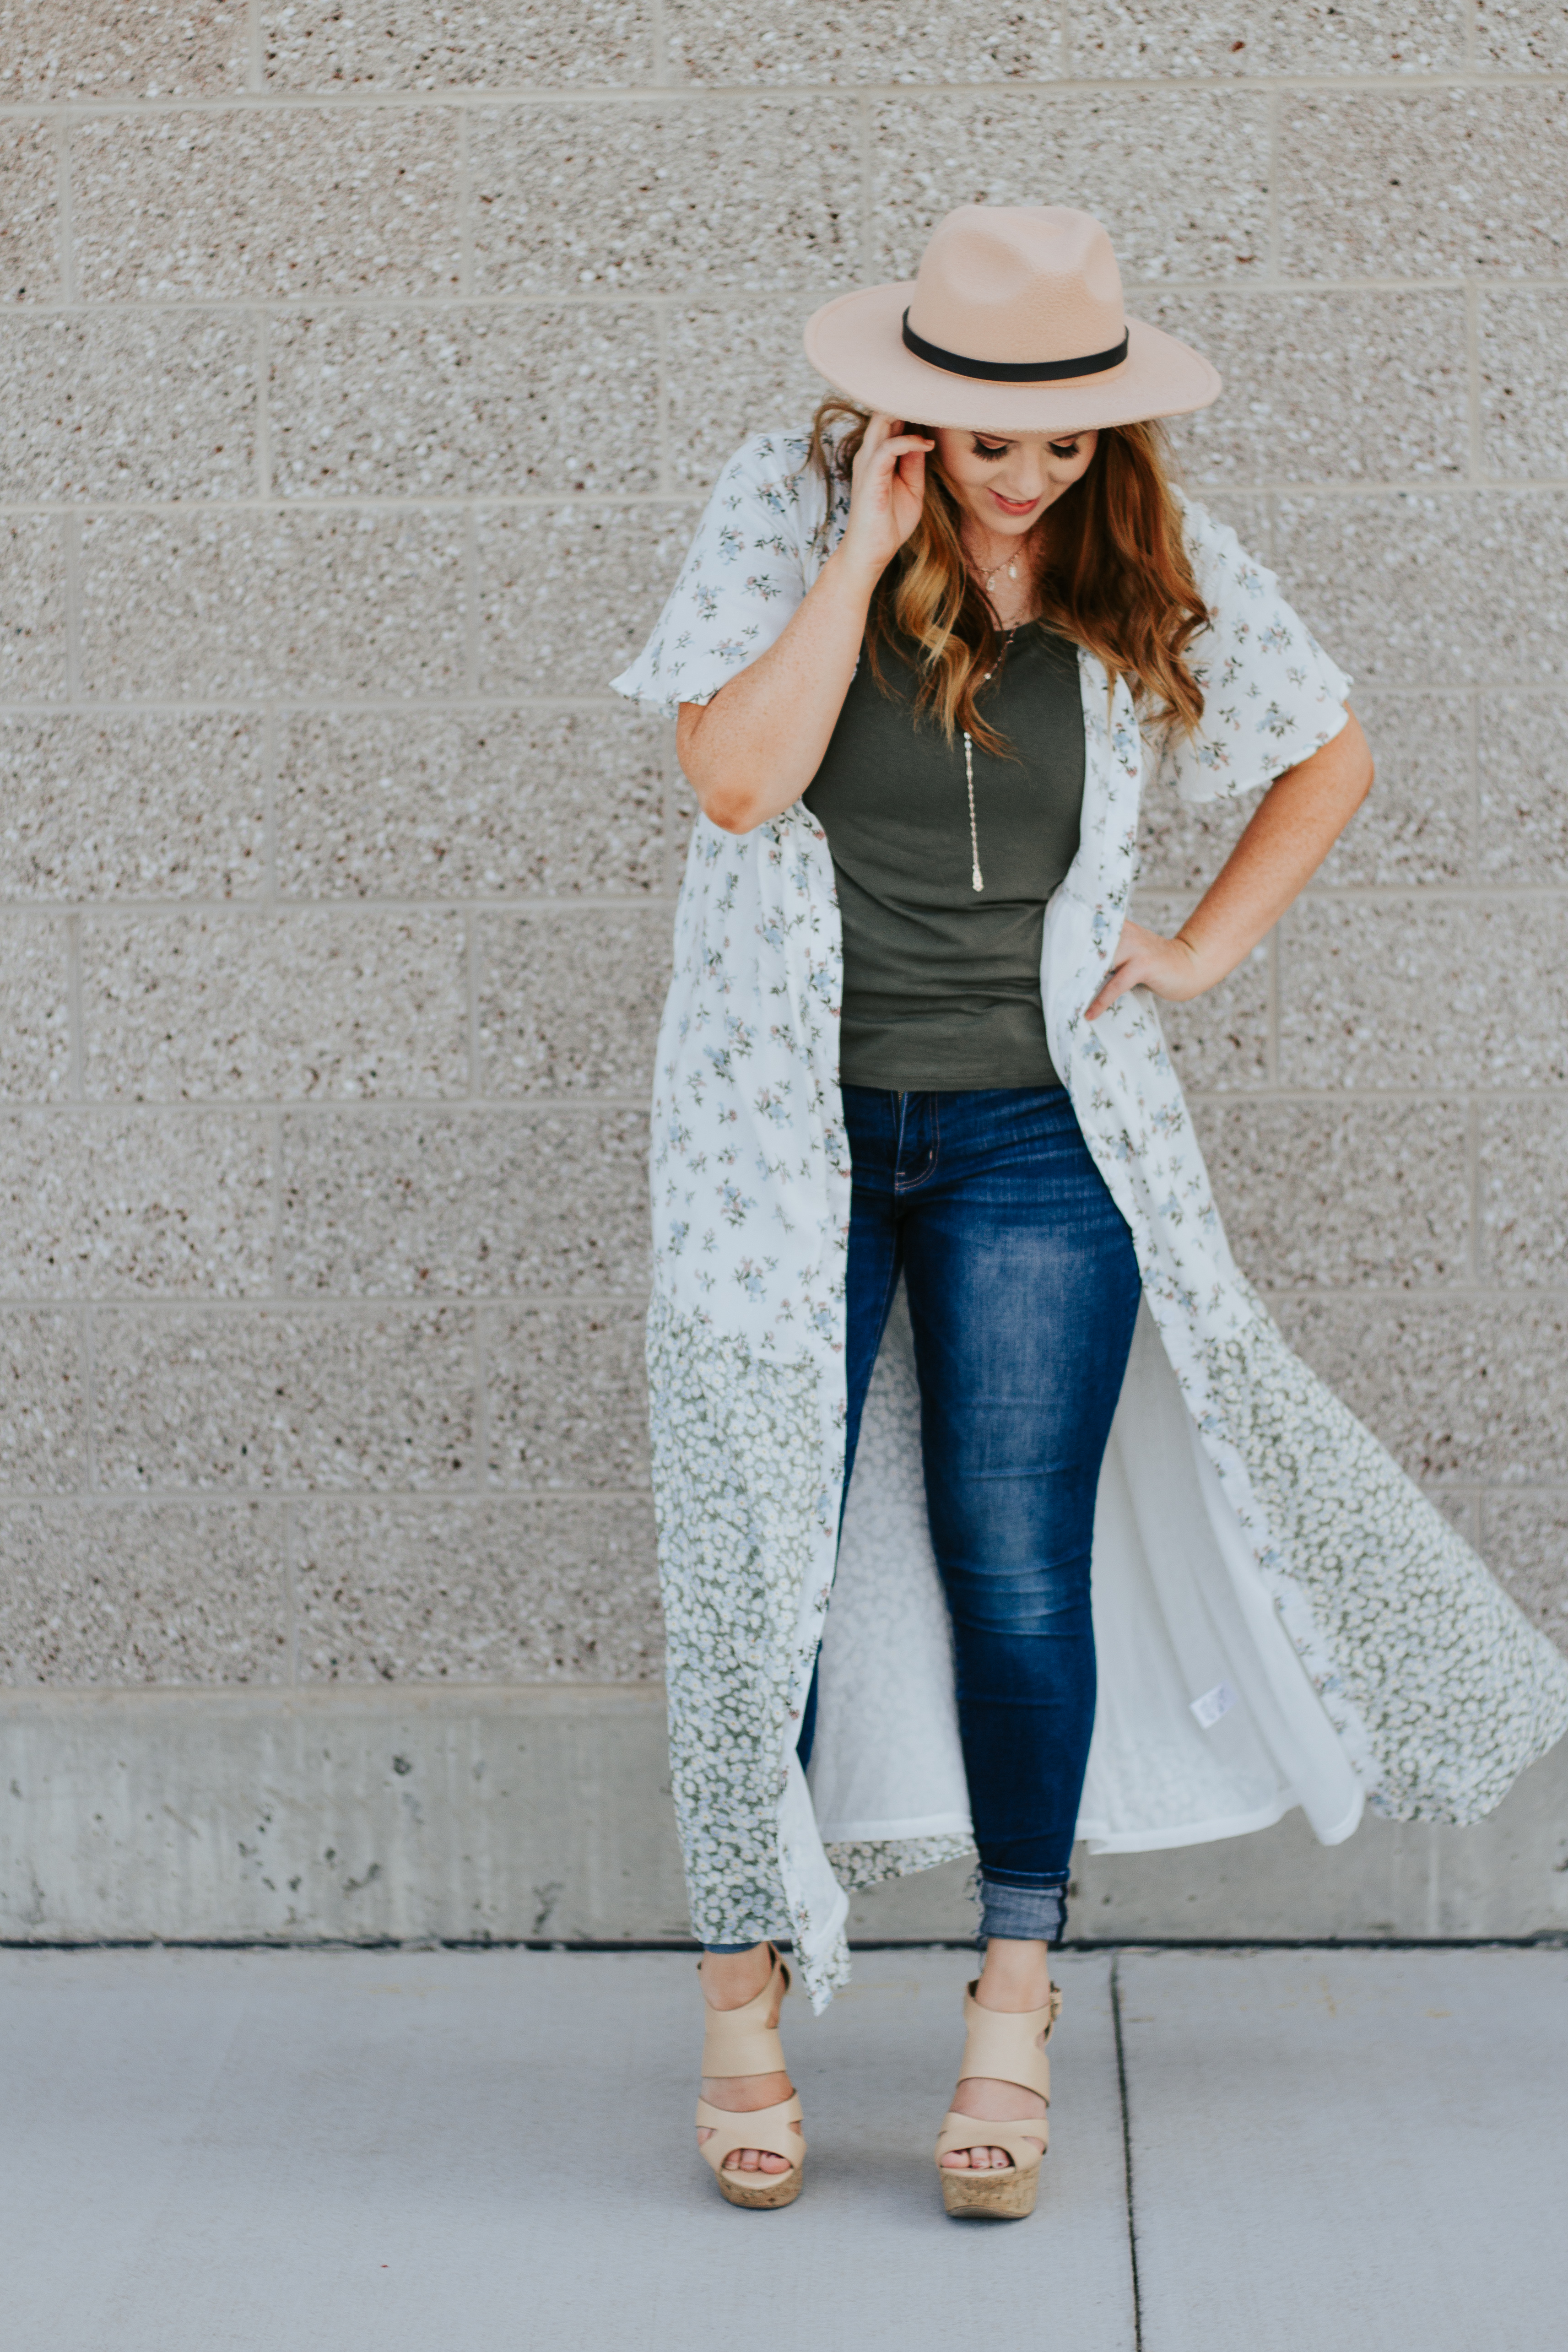 styling a dress as a duster